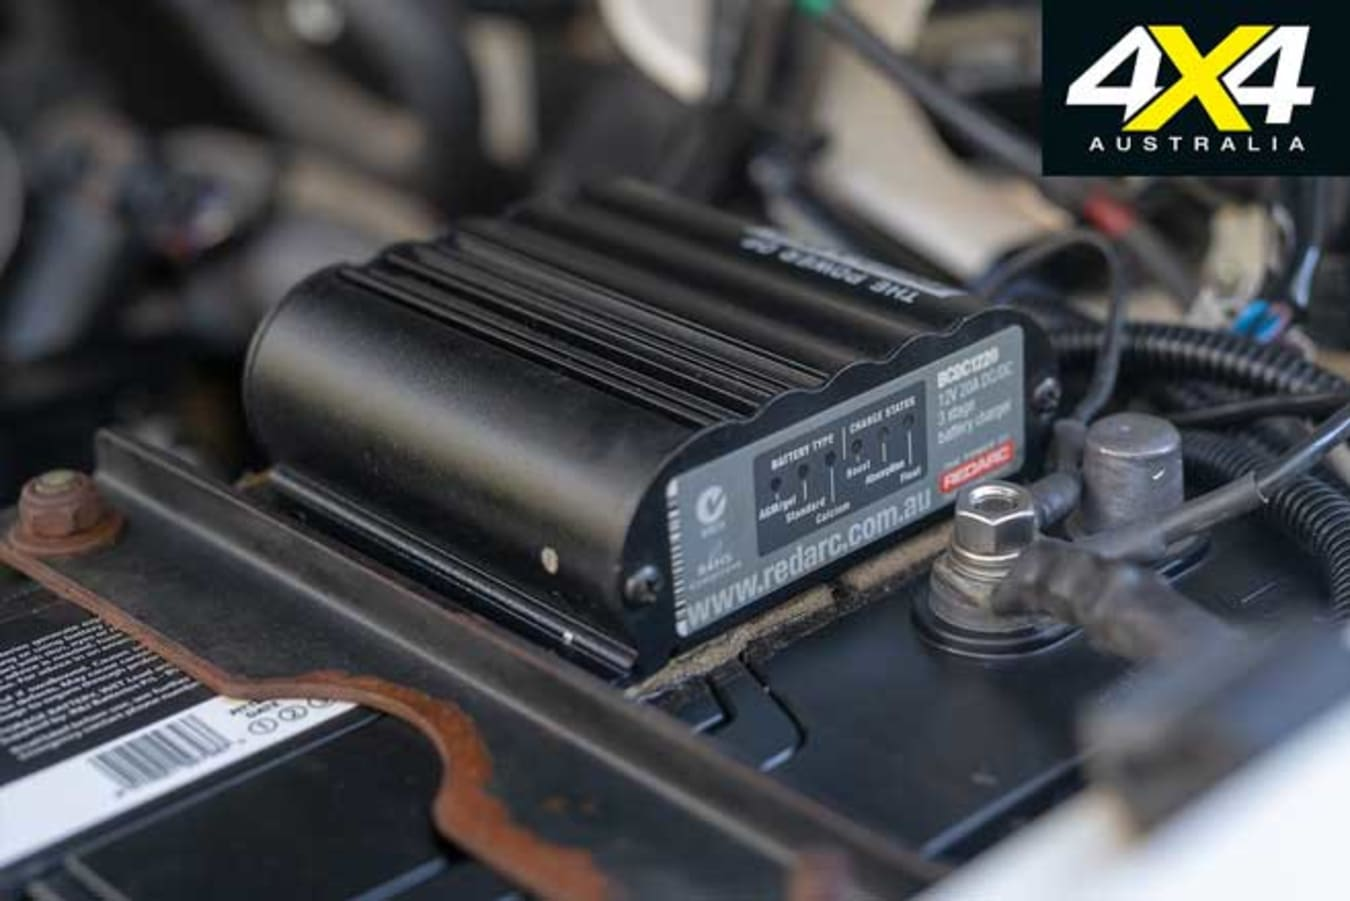 4 X 4 Batteries Charger Jpg